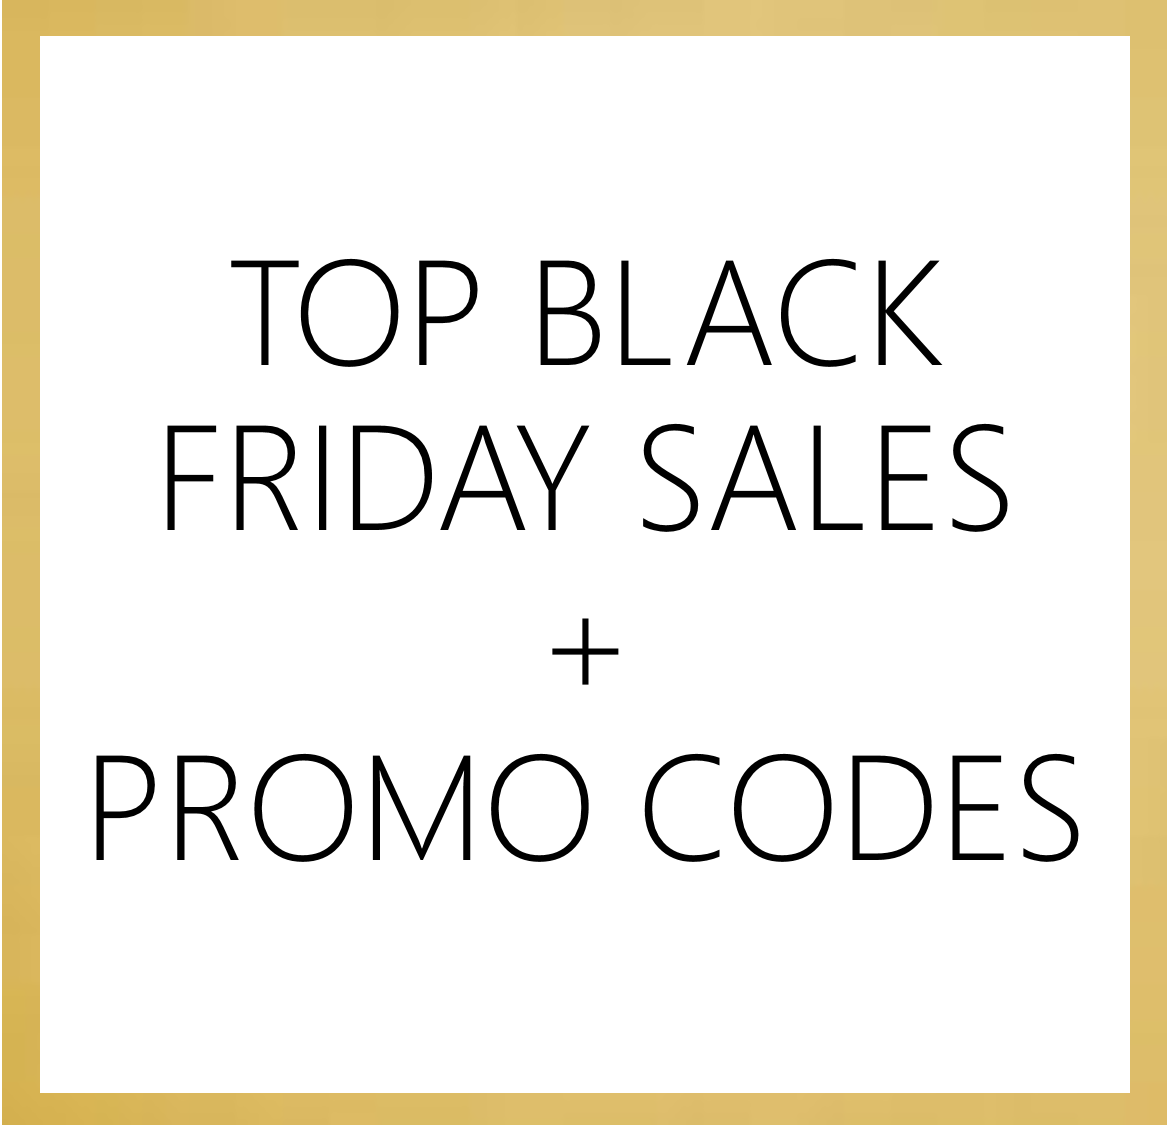 top black friday sales + promo codes, black friday, black friday deals, black friday style picks